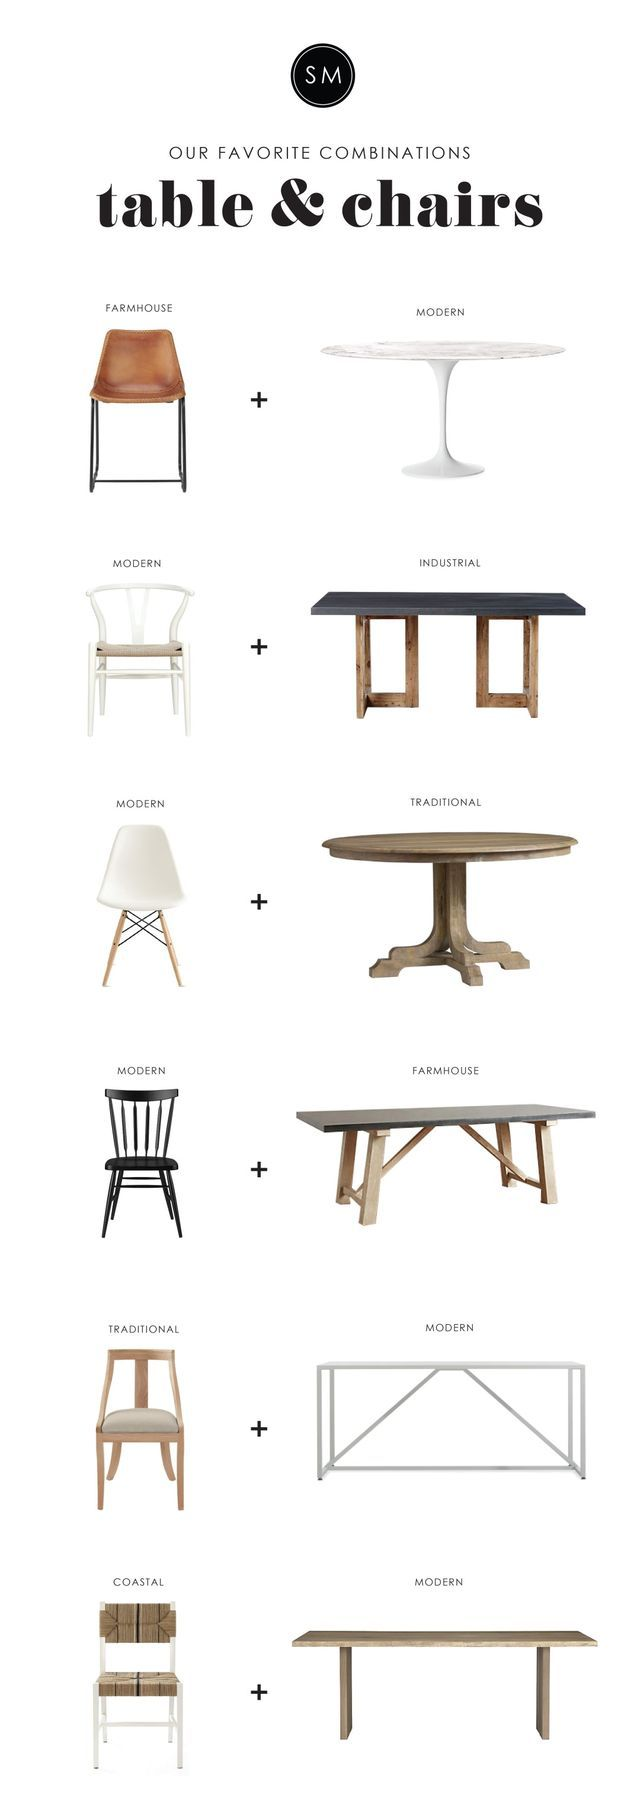 Table & Chair Combinations We Love | STUDIO MCGEE | Bloglovin'